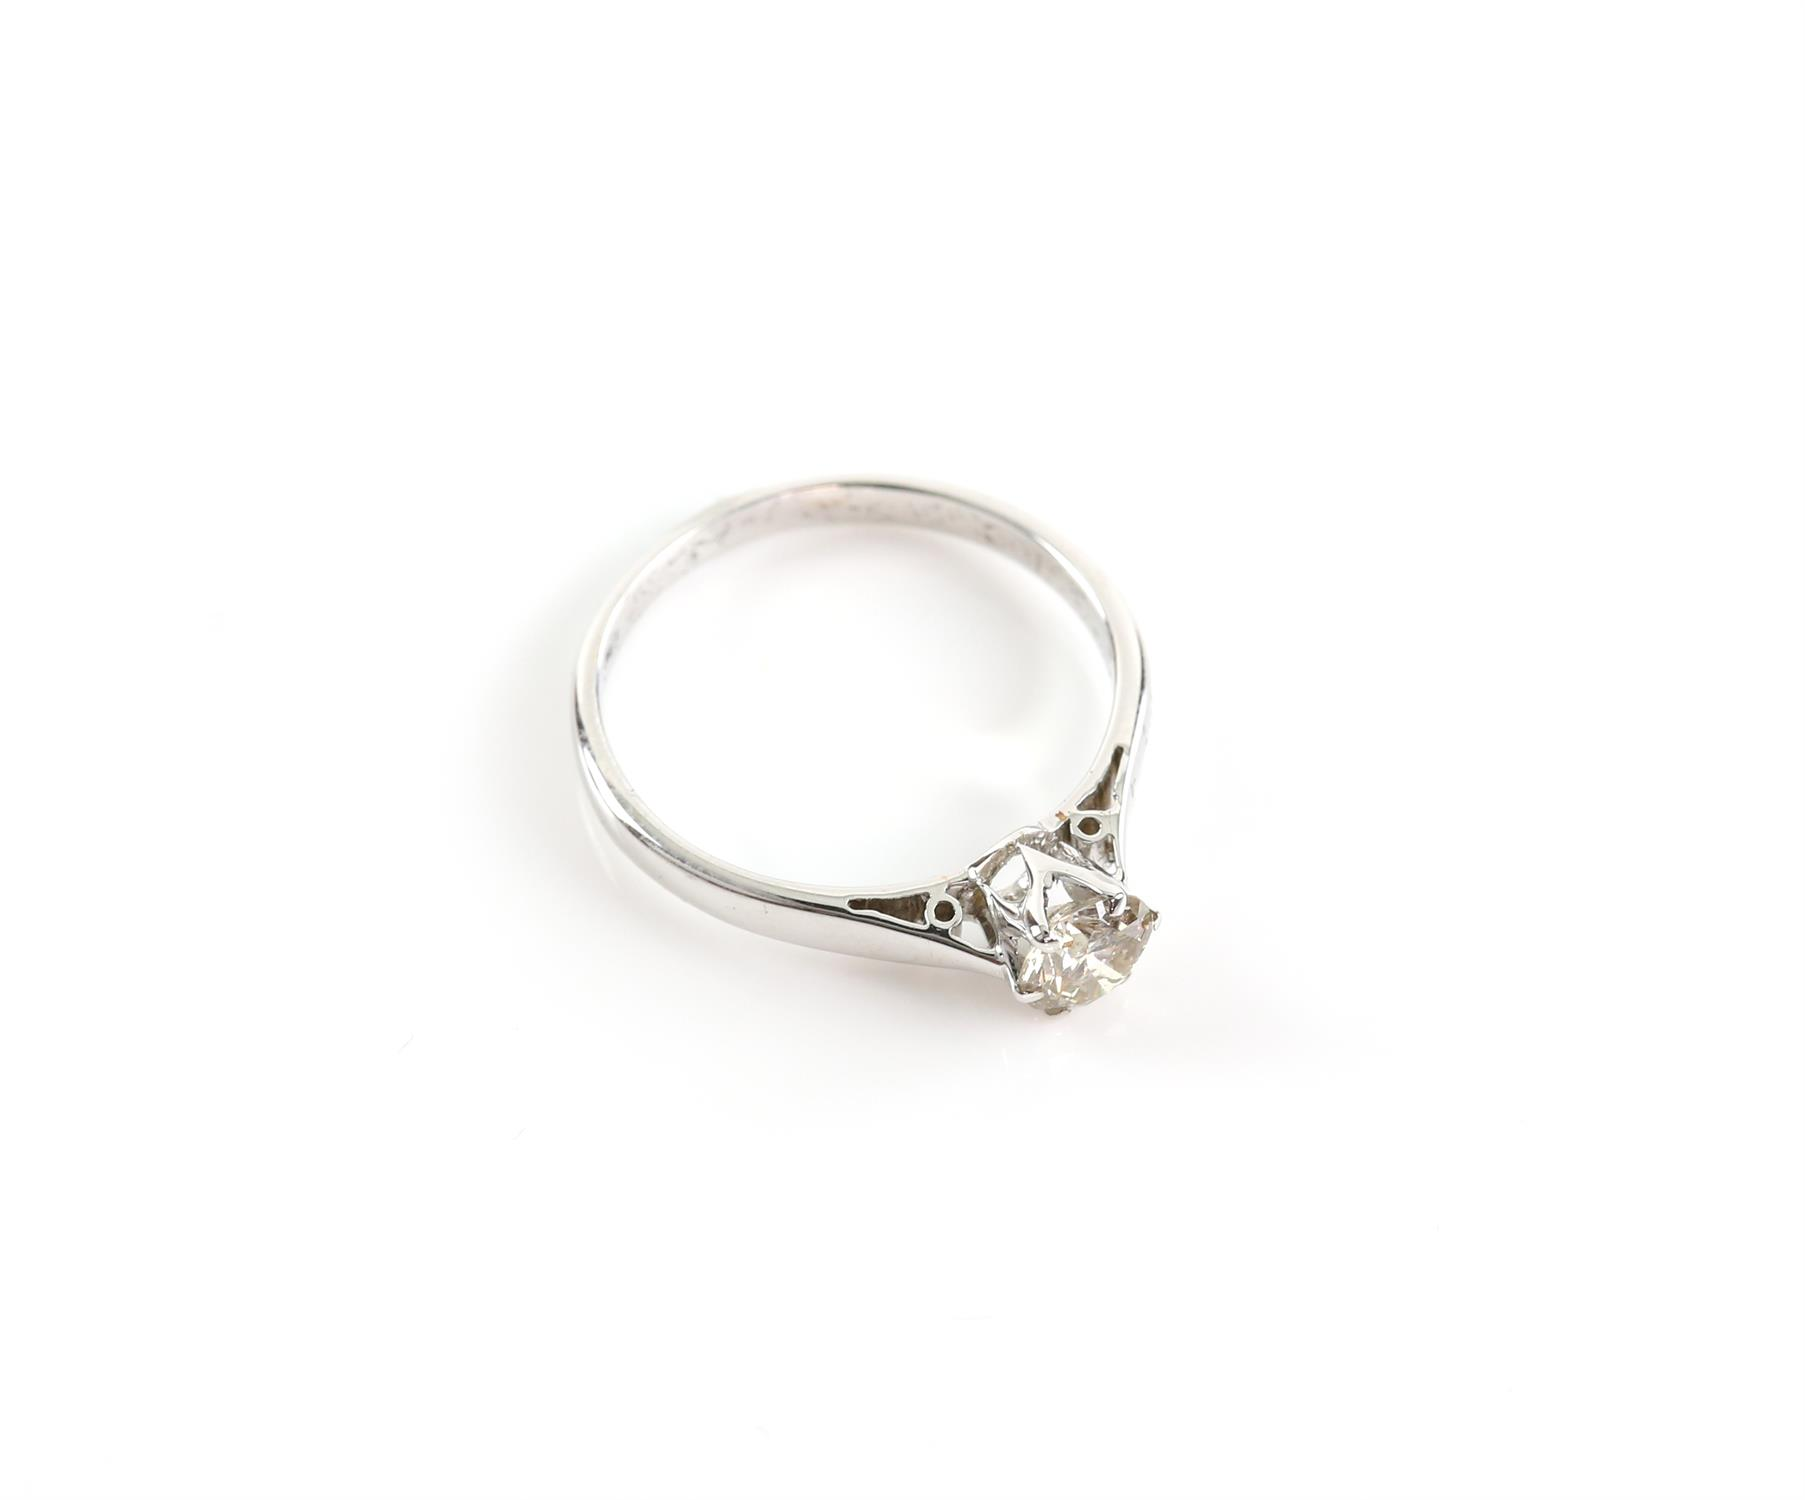 Diamond single stone ring, round brilliant cut diamond weighing an estimated 0.68 carats, claw set, - Image 2 of 3